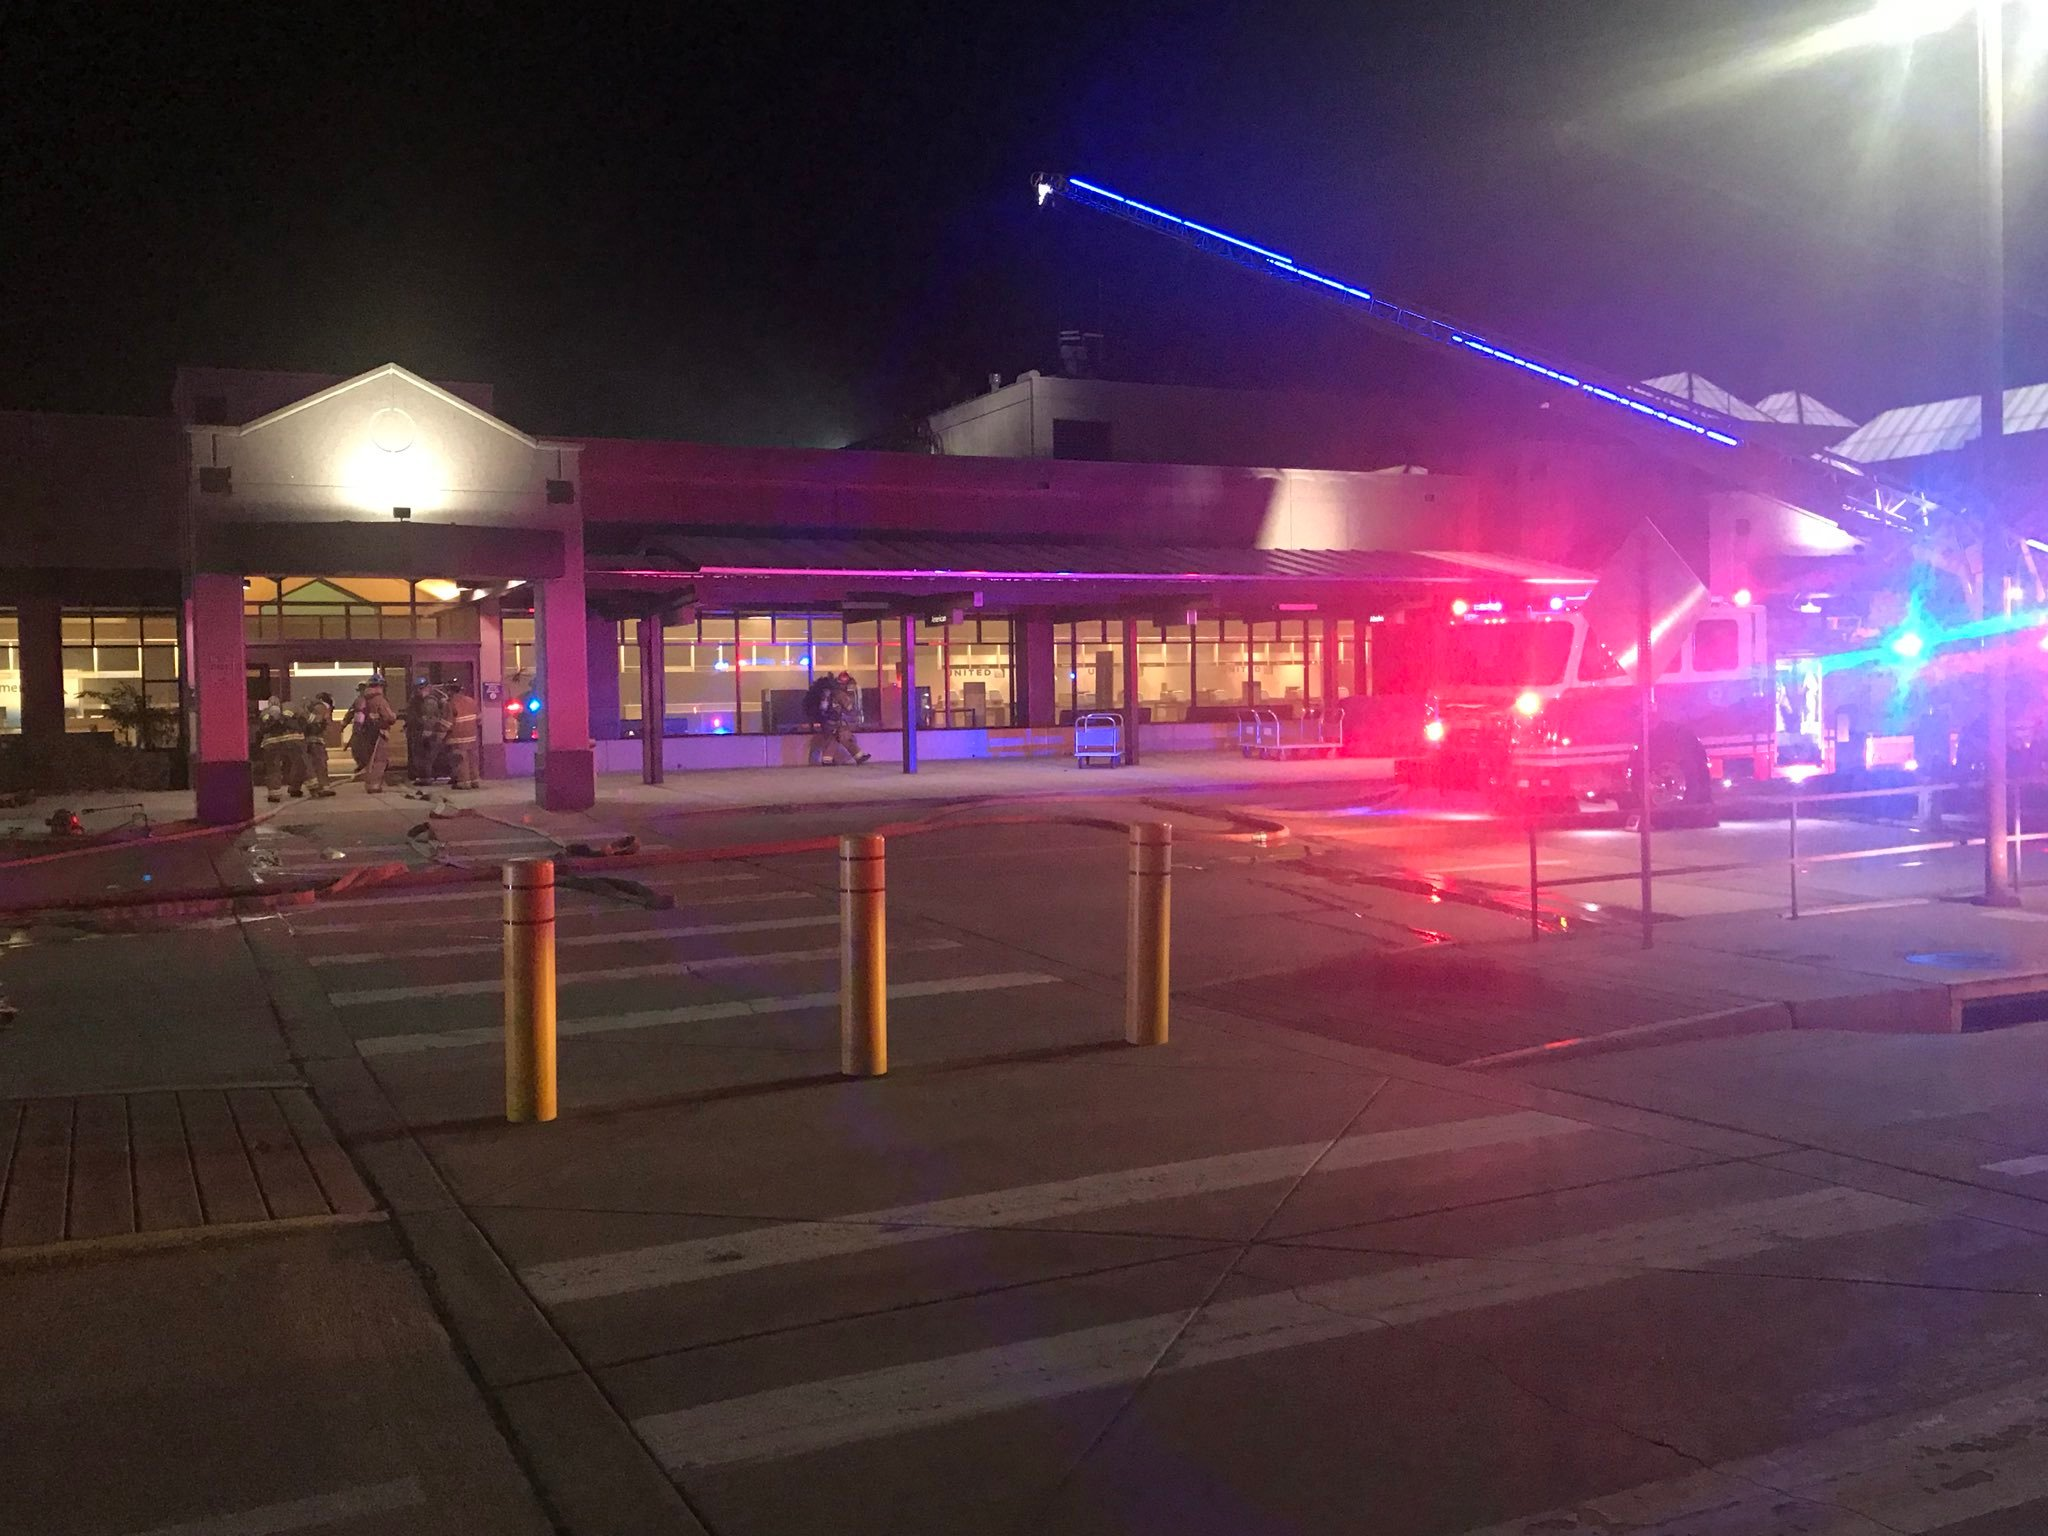 Colorado Springs Airport closed following three-alarm fire